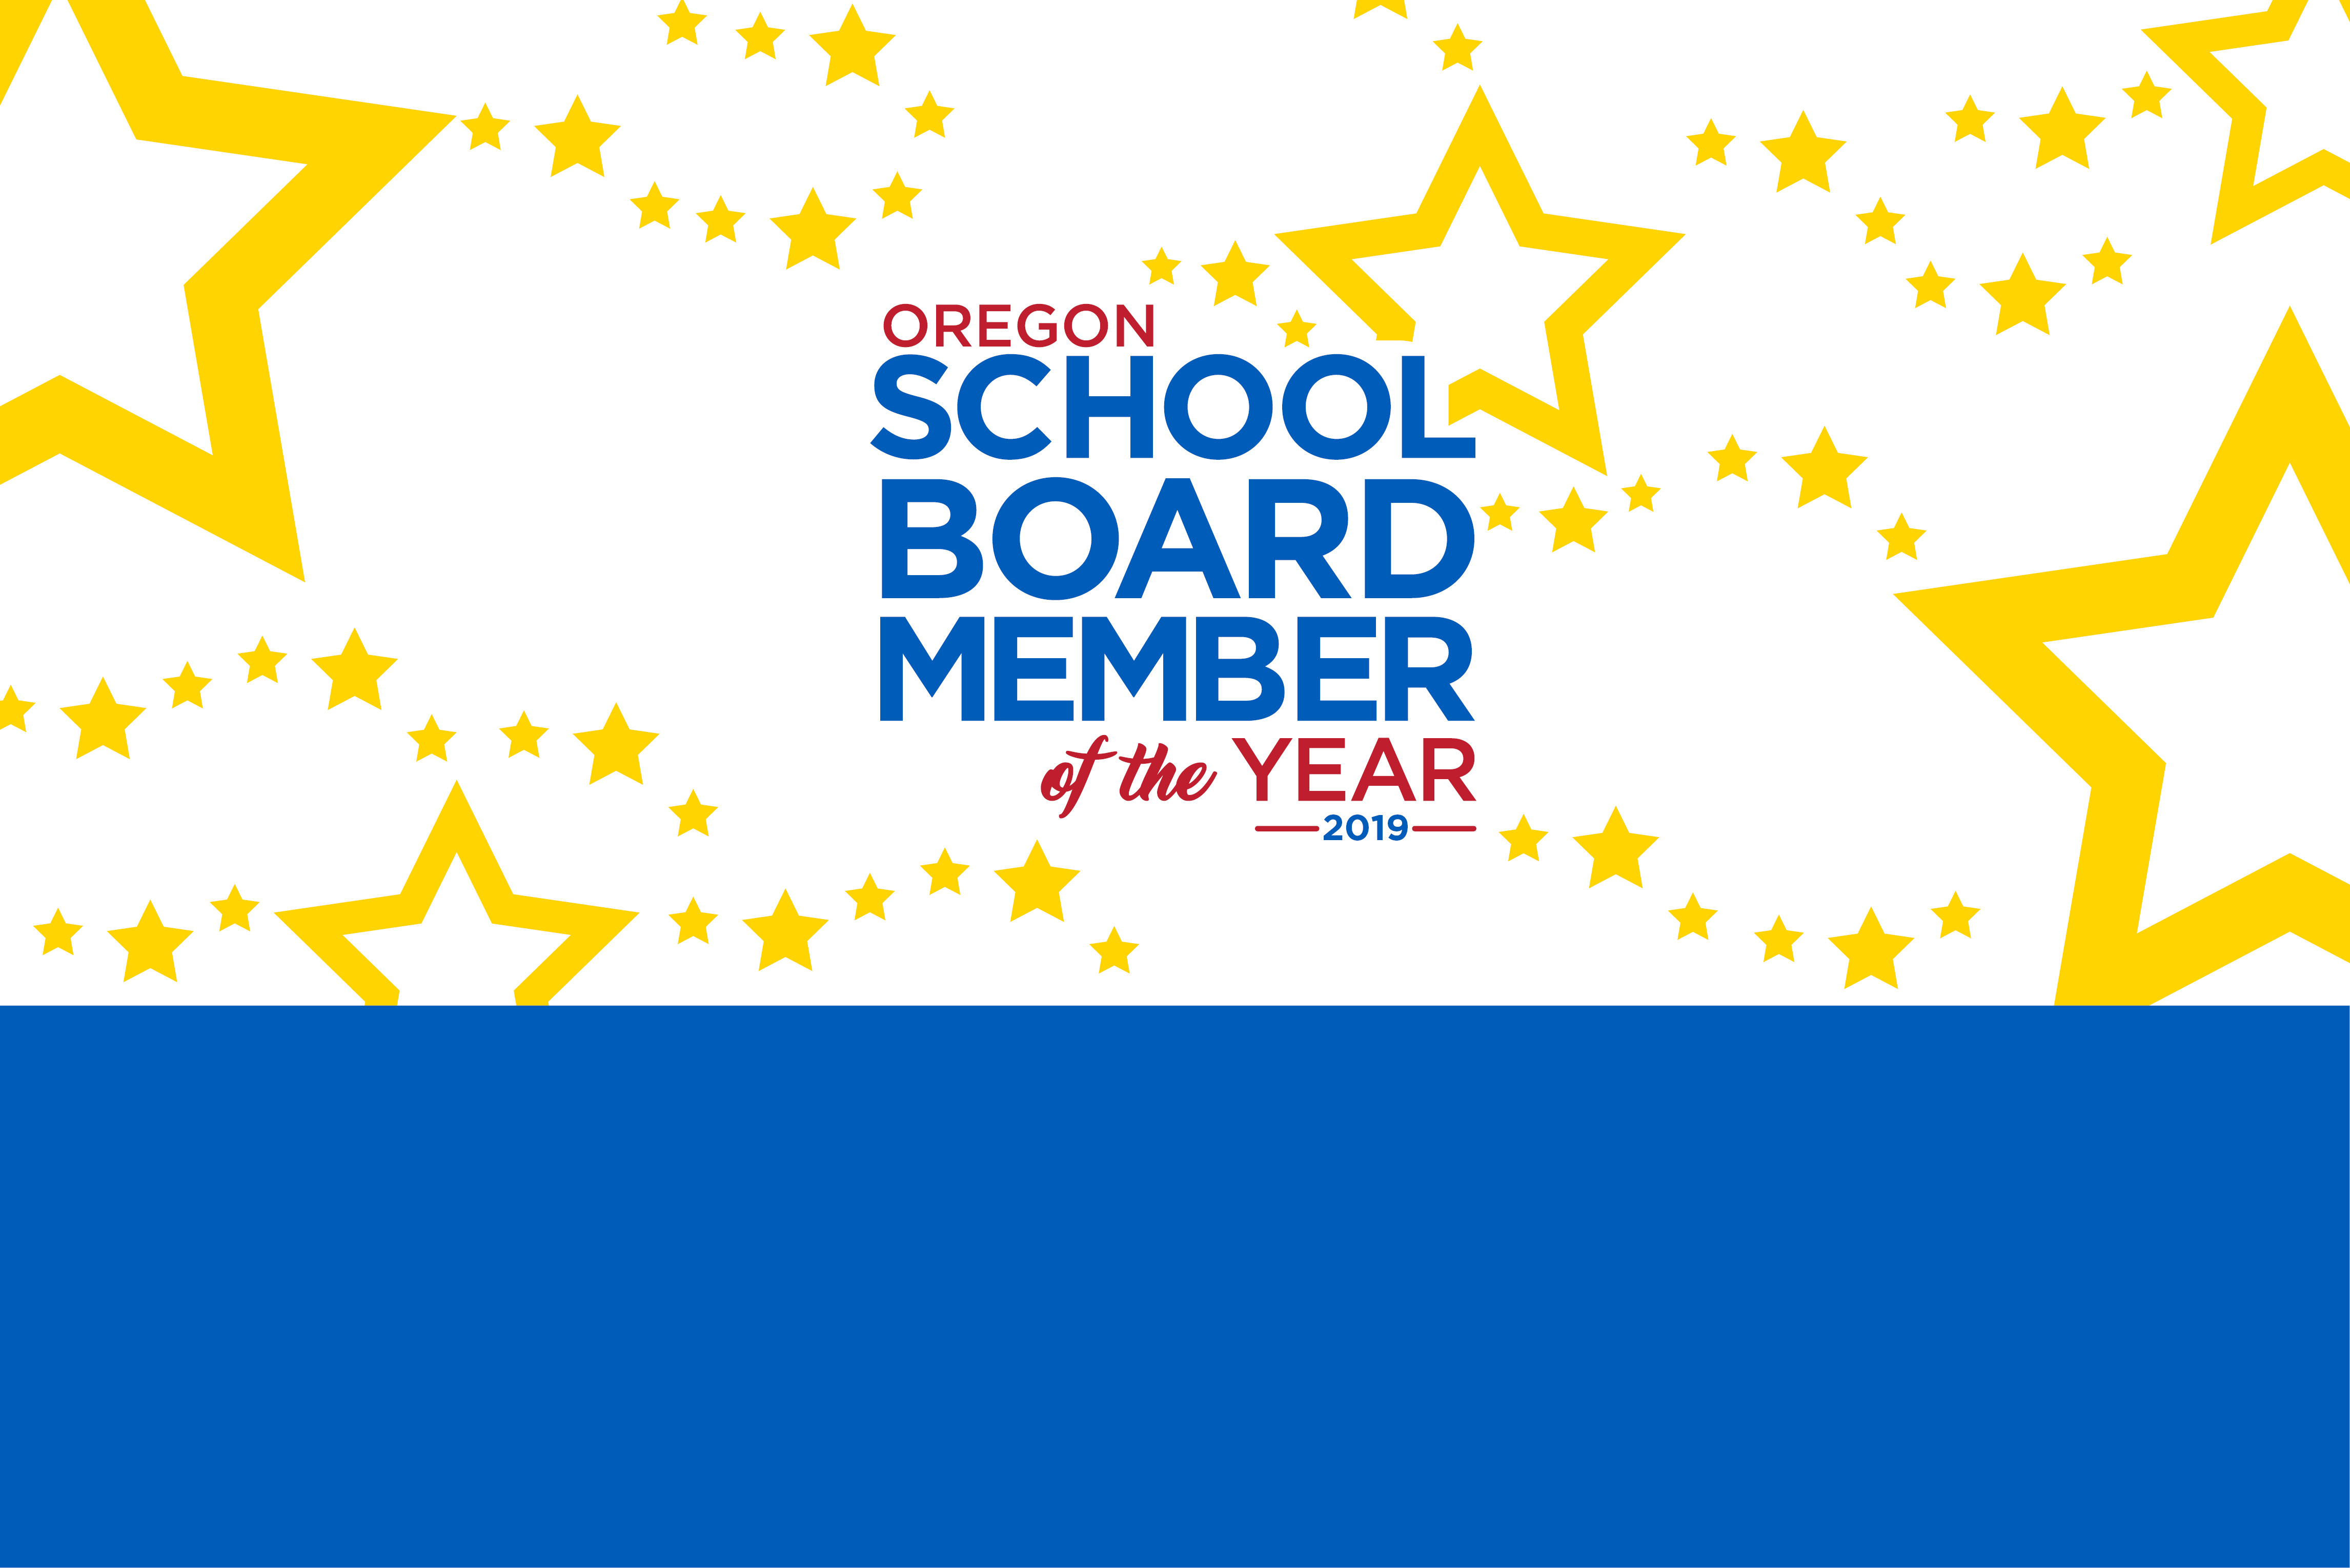 school board member of the year banner